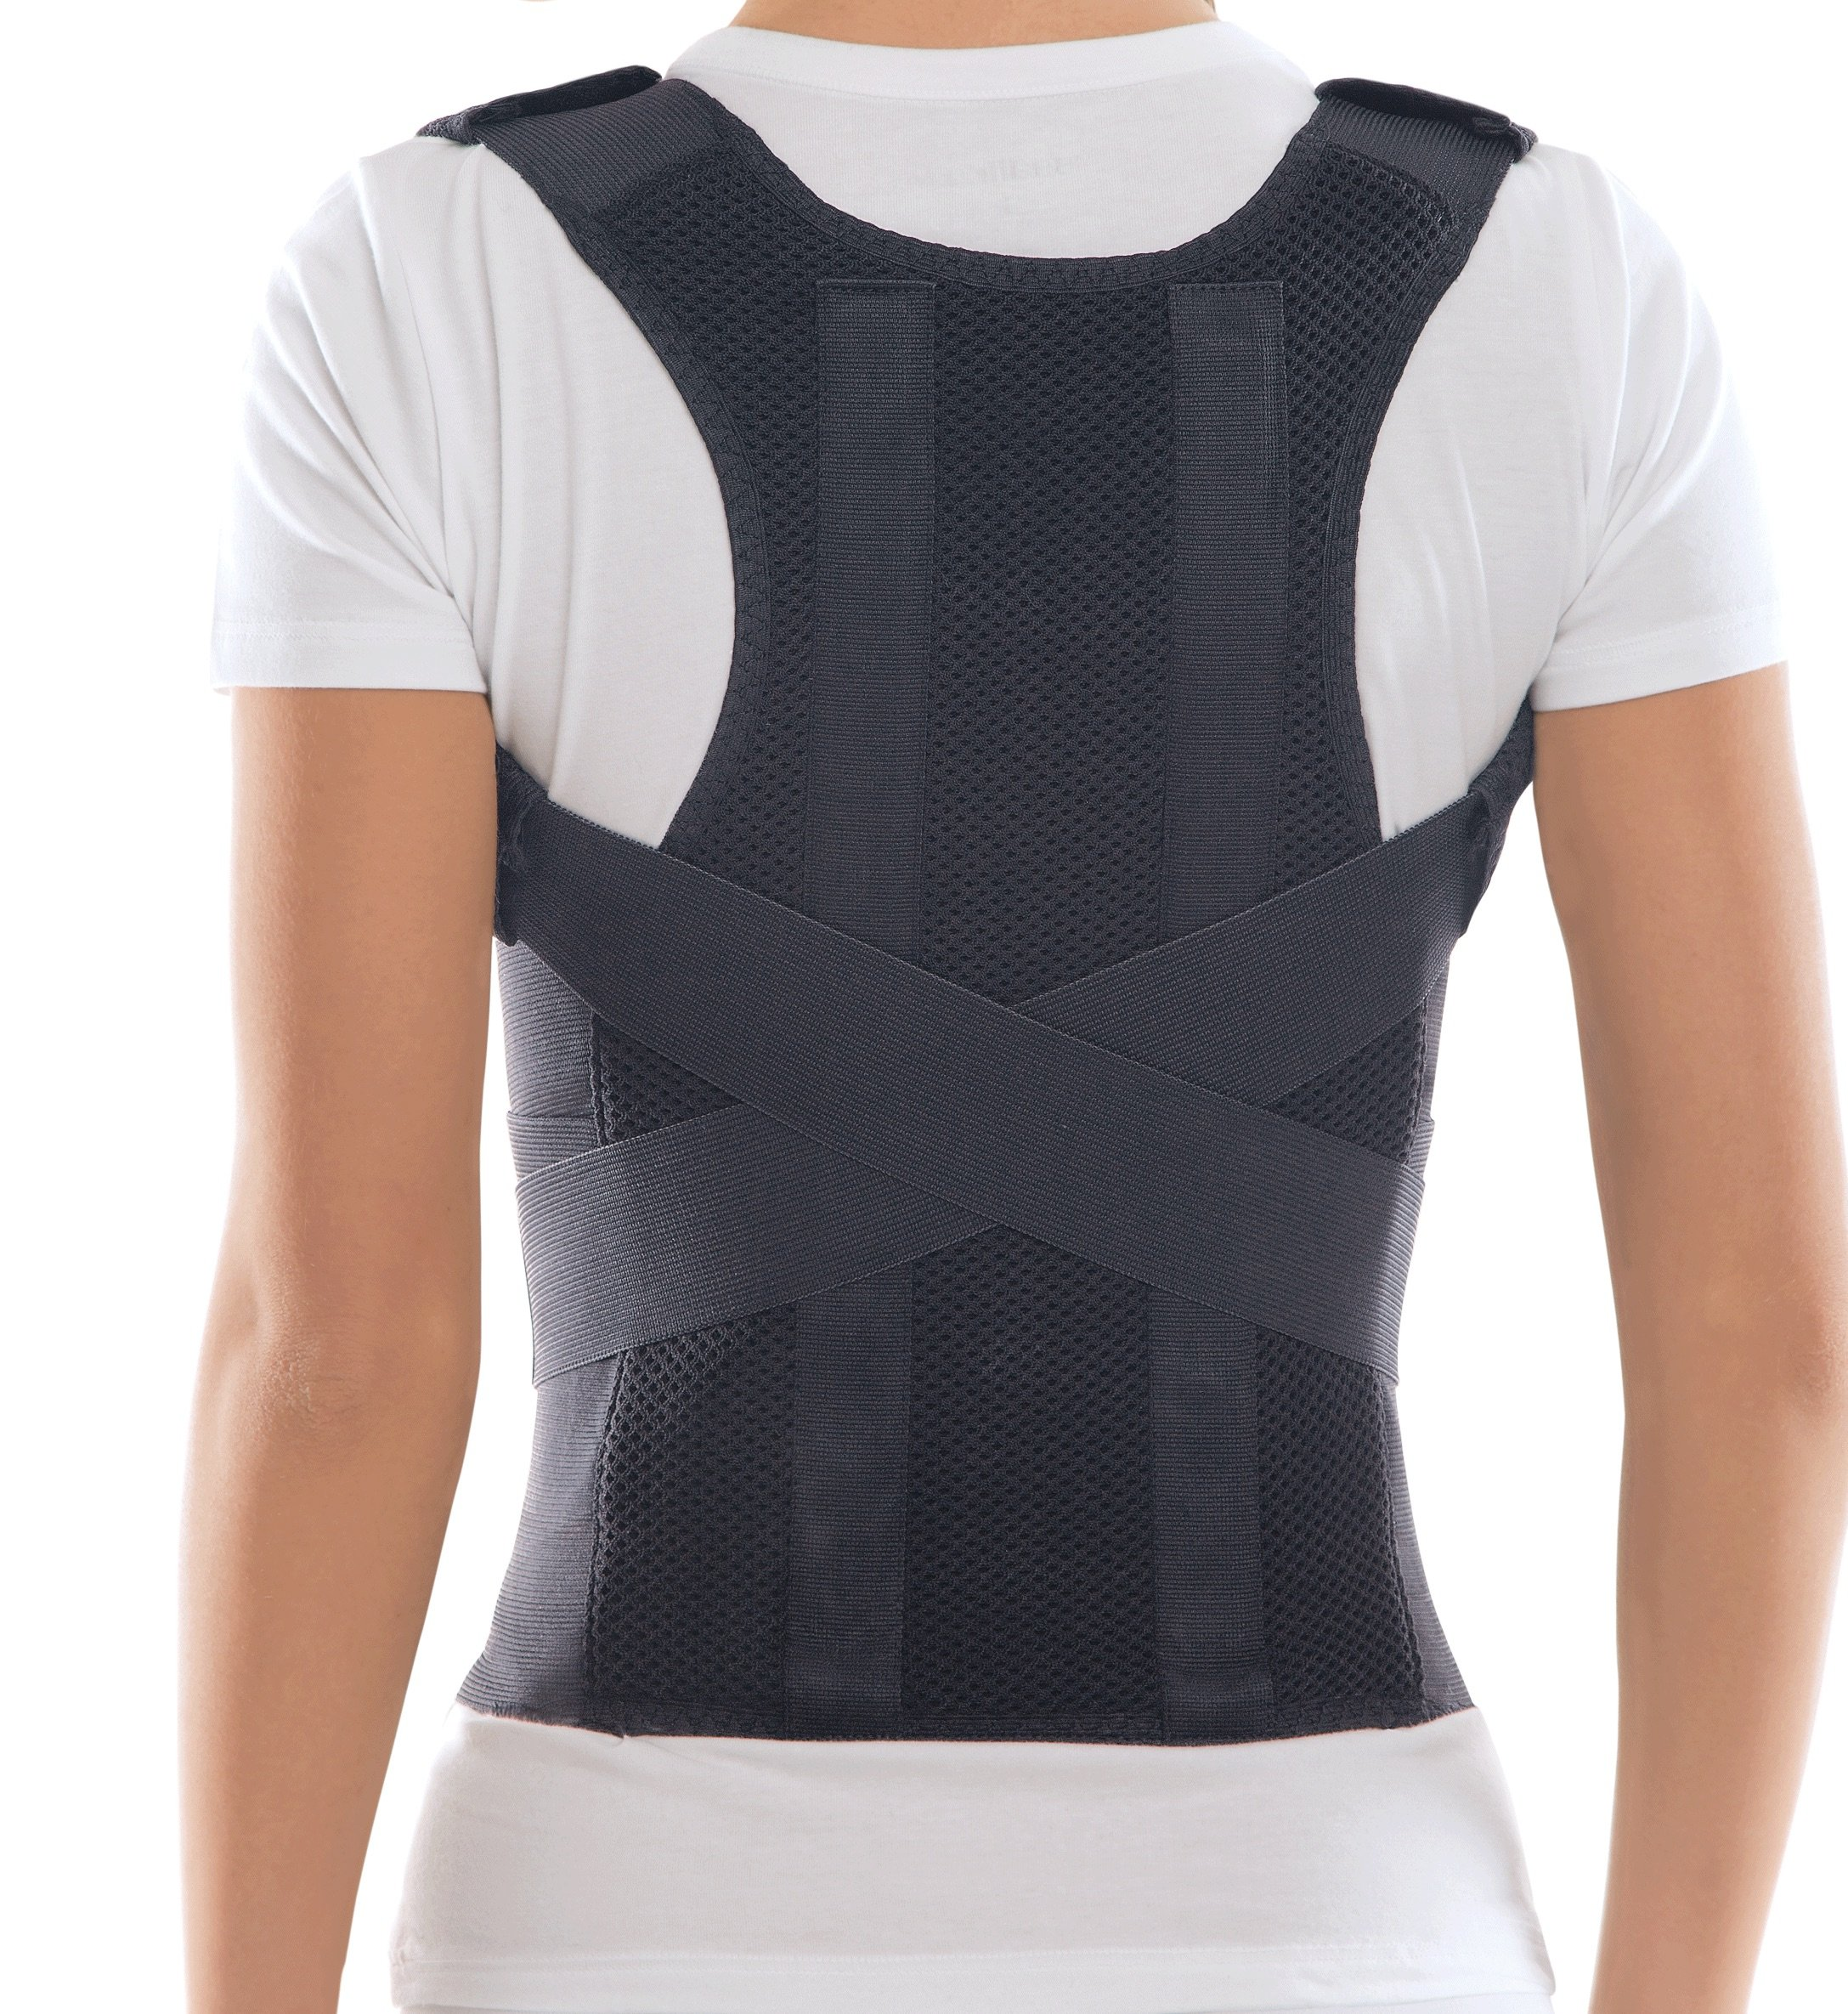 TOROS-GROUP Comfort Posture Corrector Clavicle and Shoulder Support Back Brace, Upper and Lower Back Pain Relief, Fully Adjustable for Men and Women, Thoracic Kyphosis M /656A-3 by TOROS-GROUP